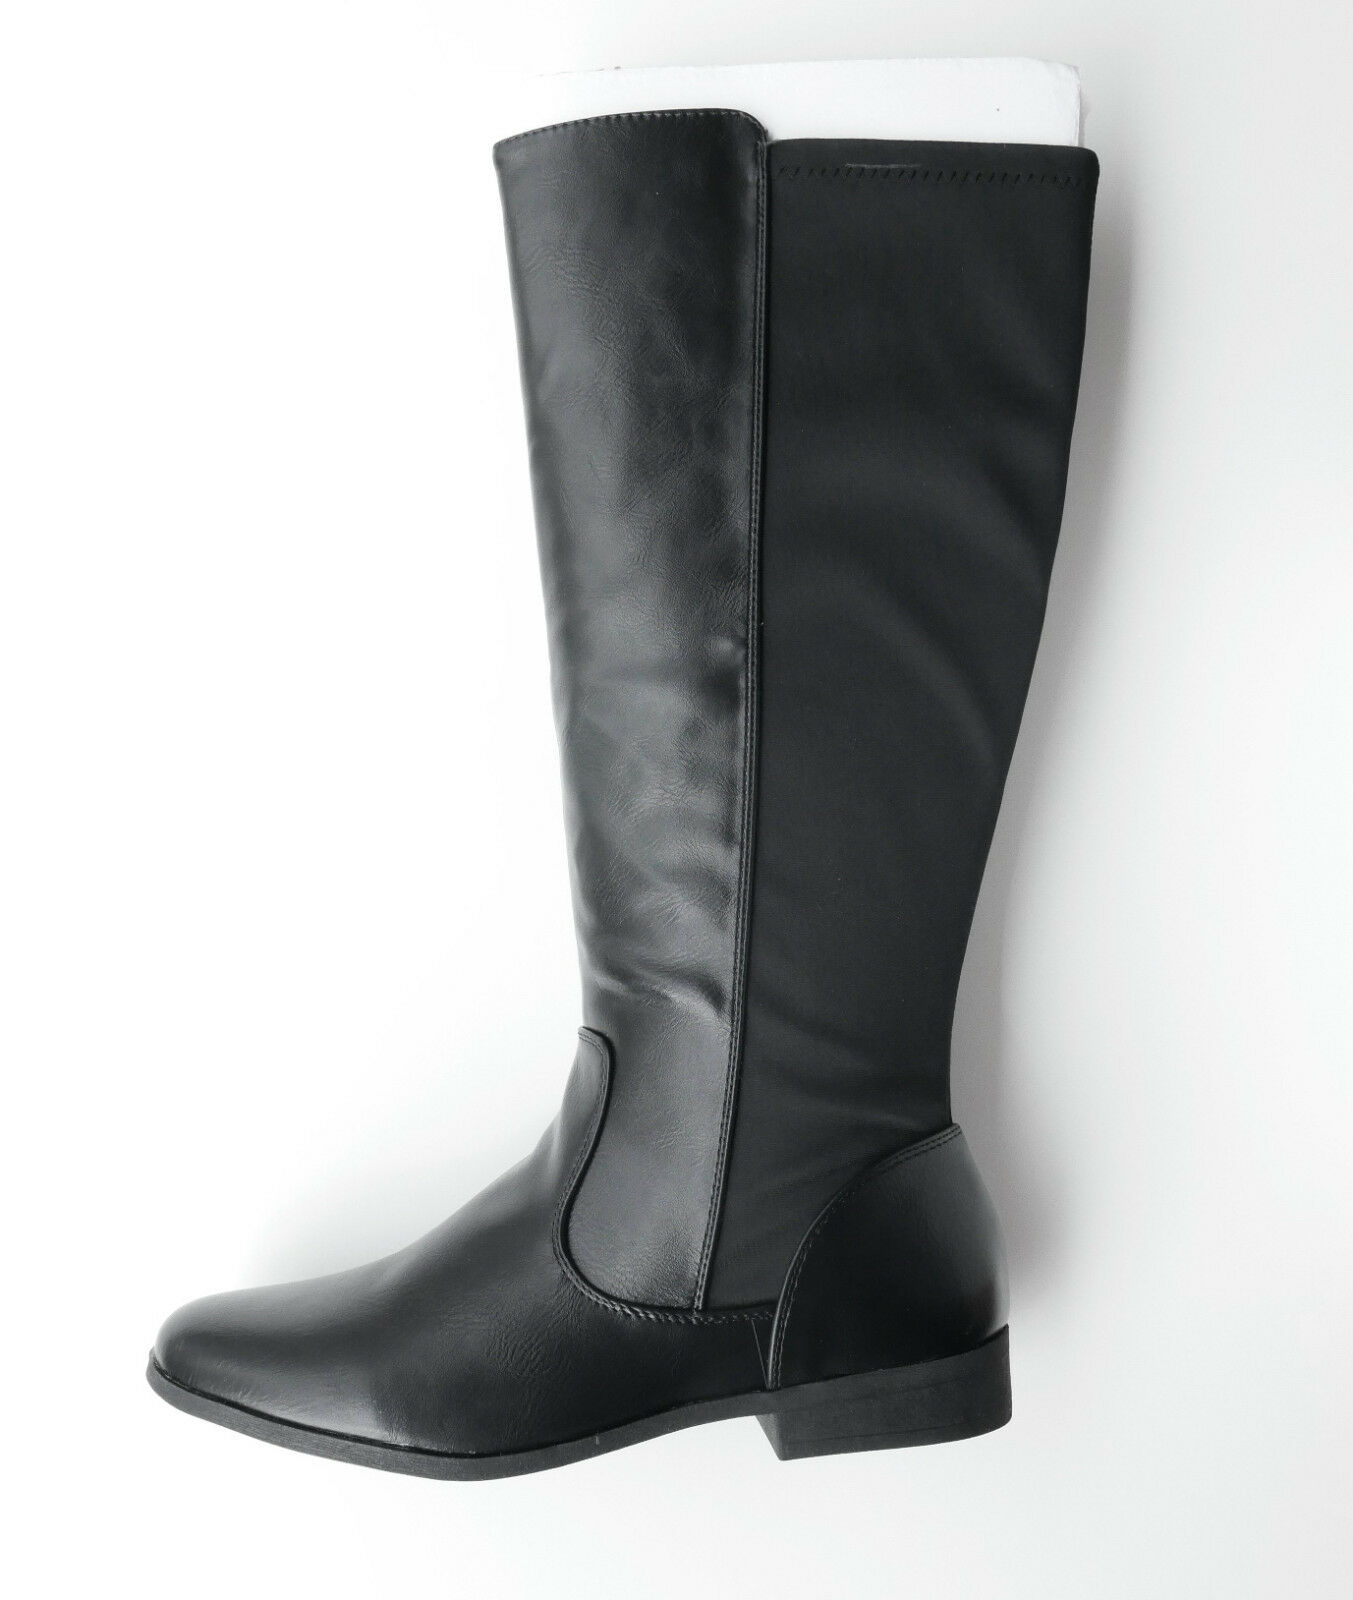 WOMANS COMBINATION FABRIC AND LEATHER BLACK BOOTS BY TEX SIZE 7